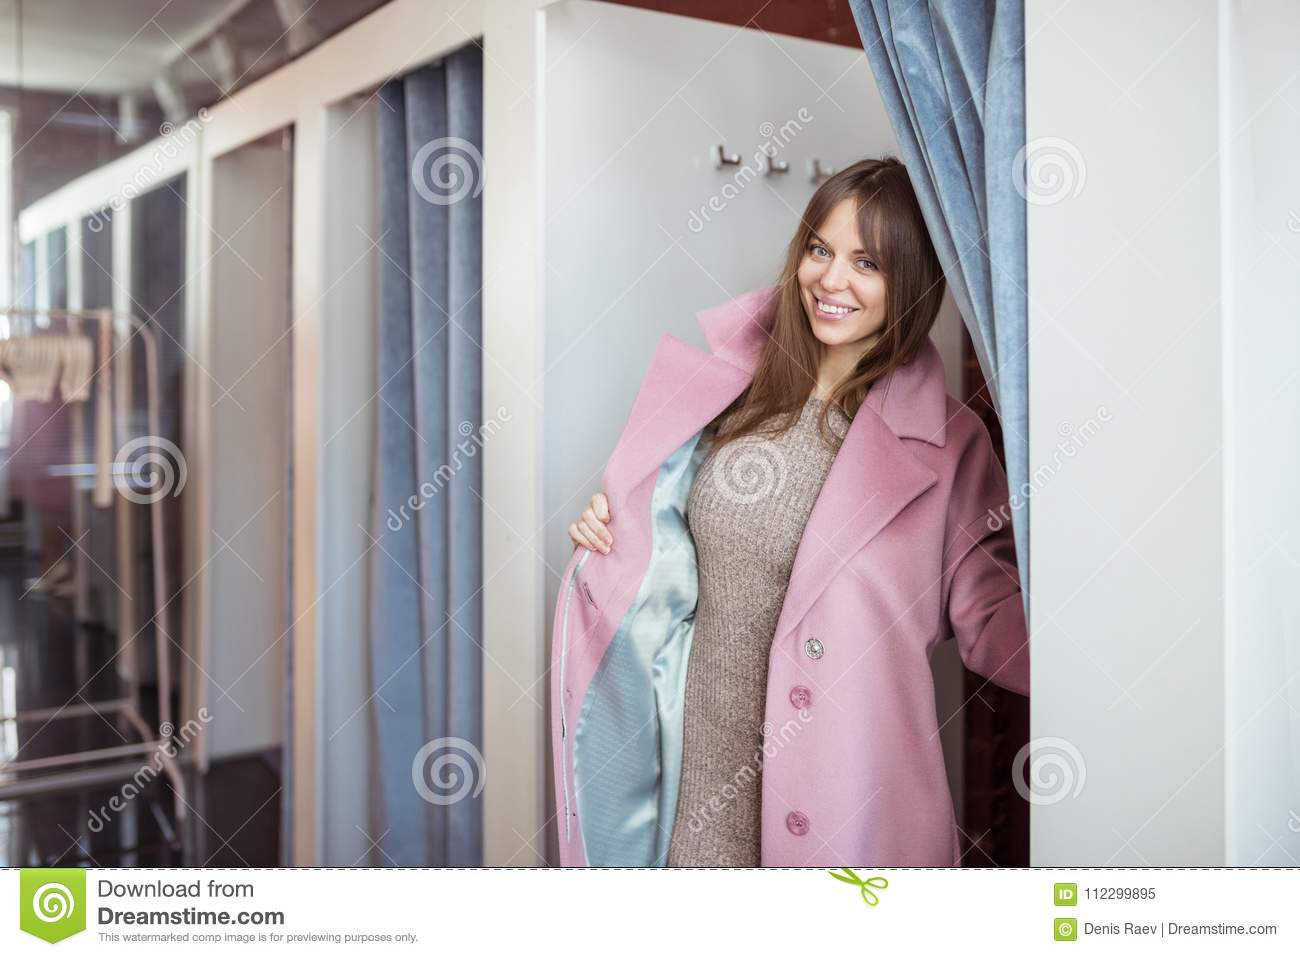 With Young girl dressing room are certainly